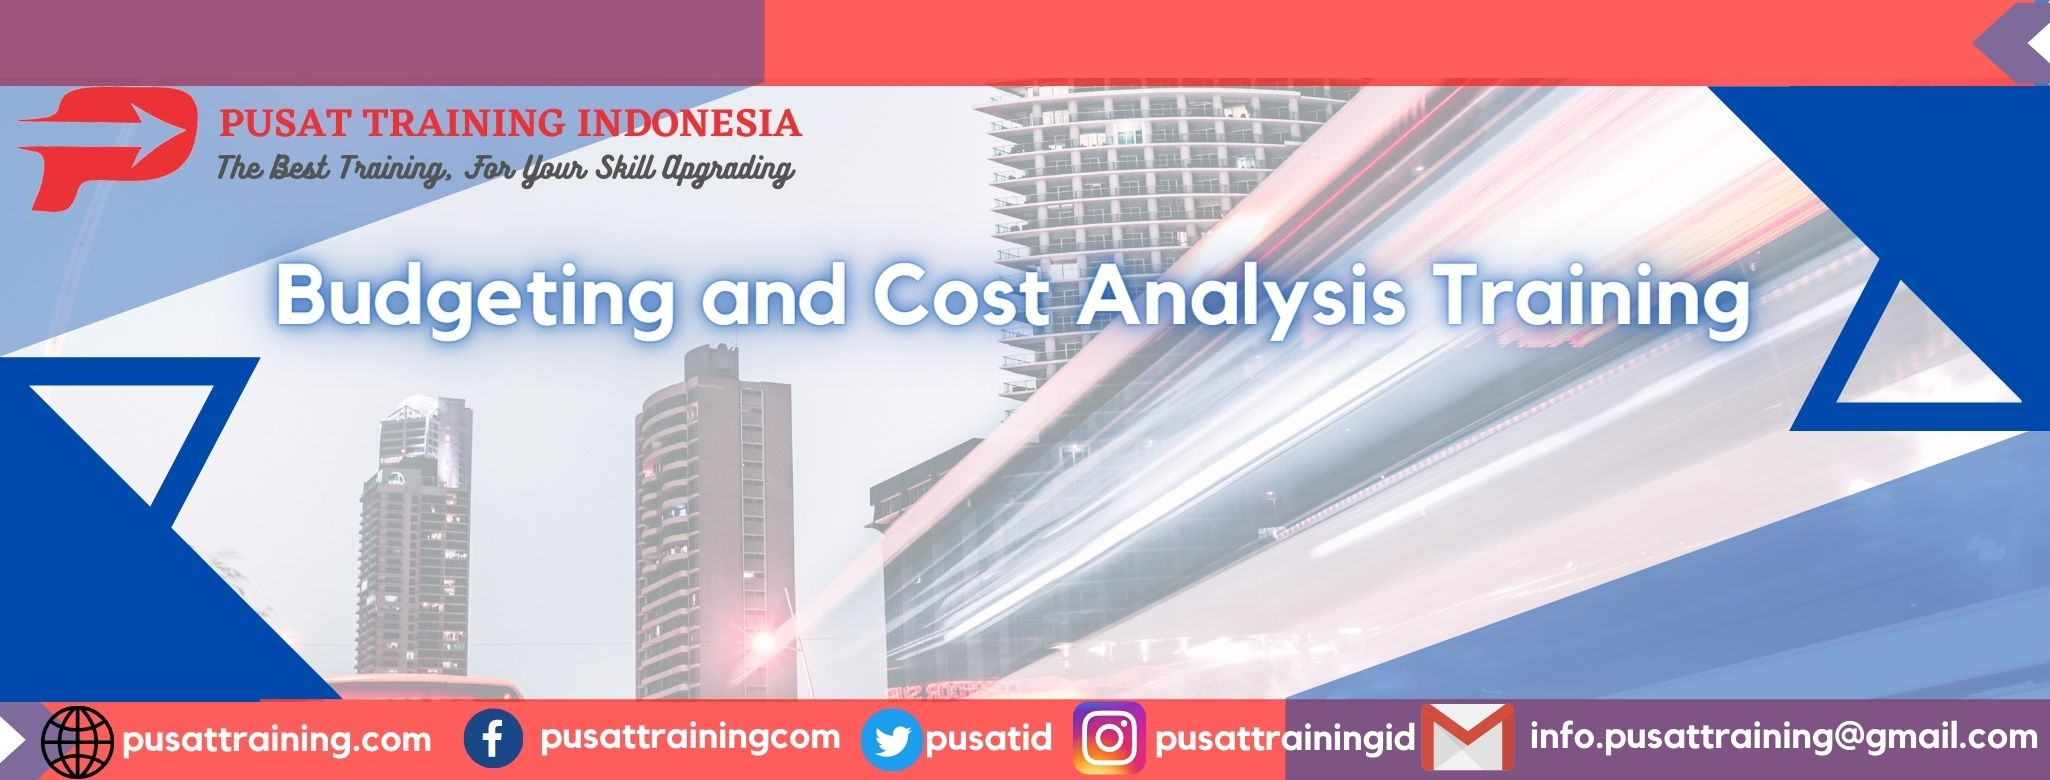 Budgeting-and-Cost-Analysis-Training